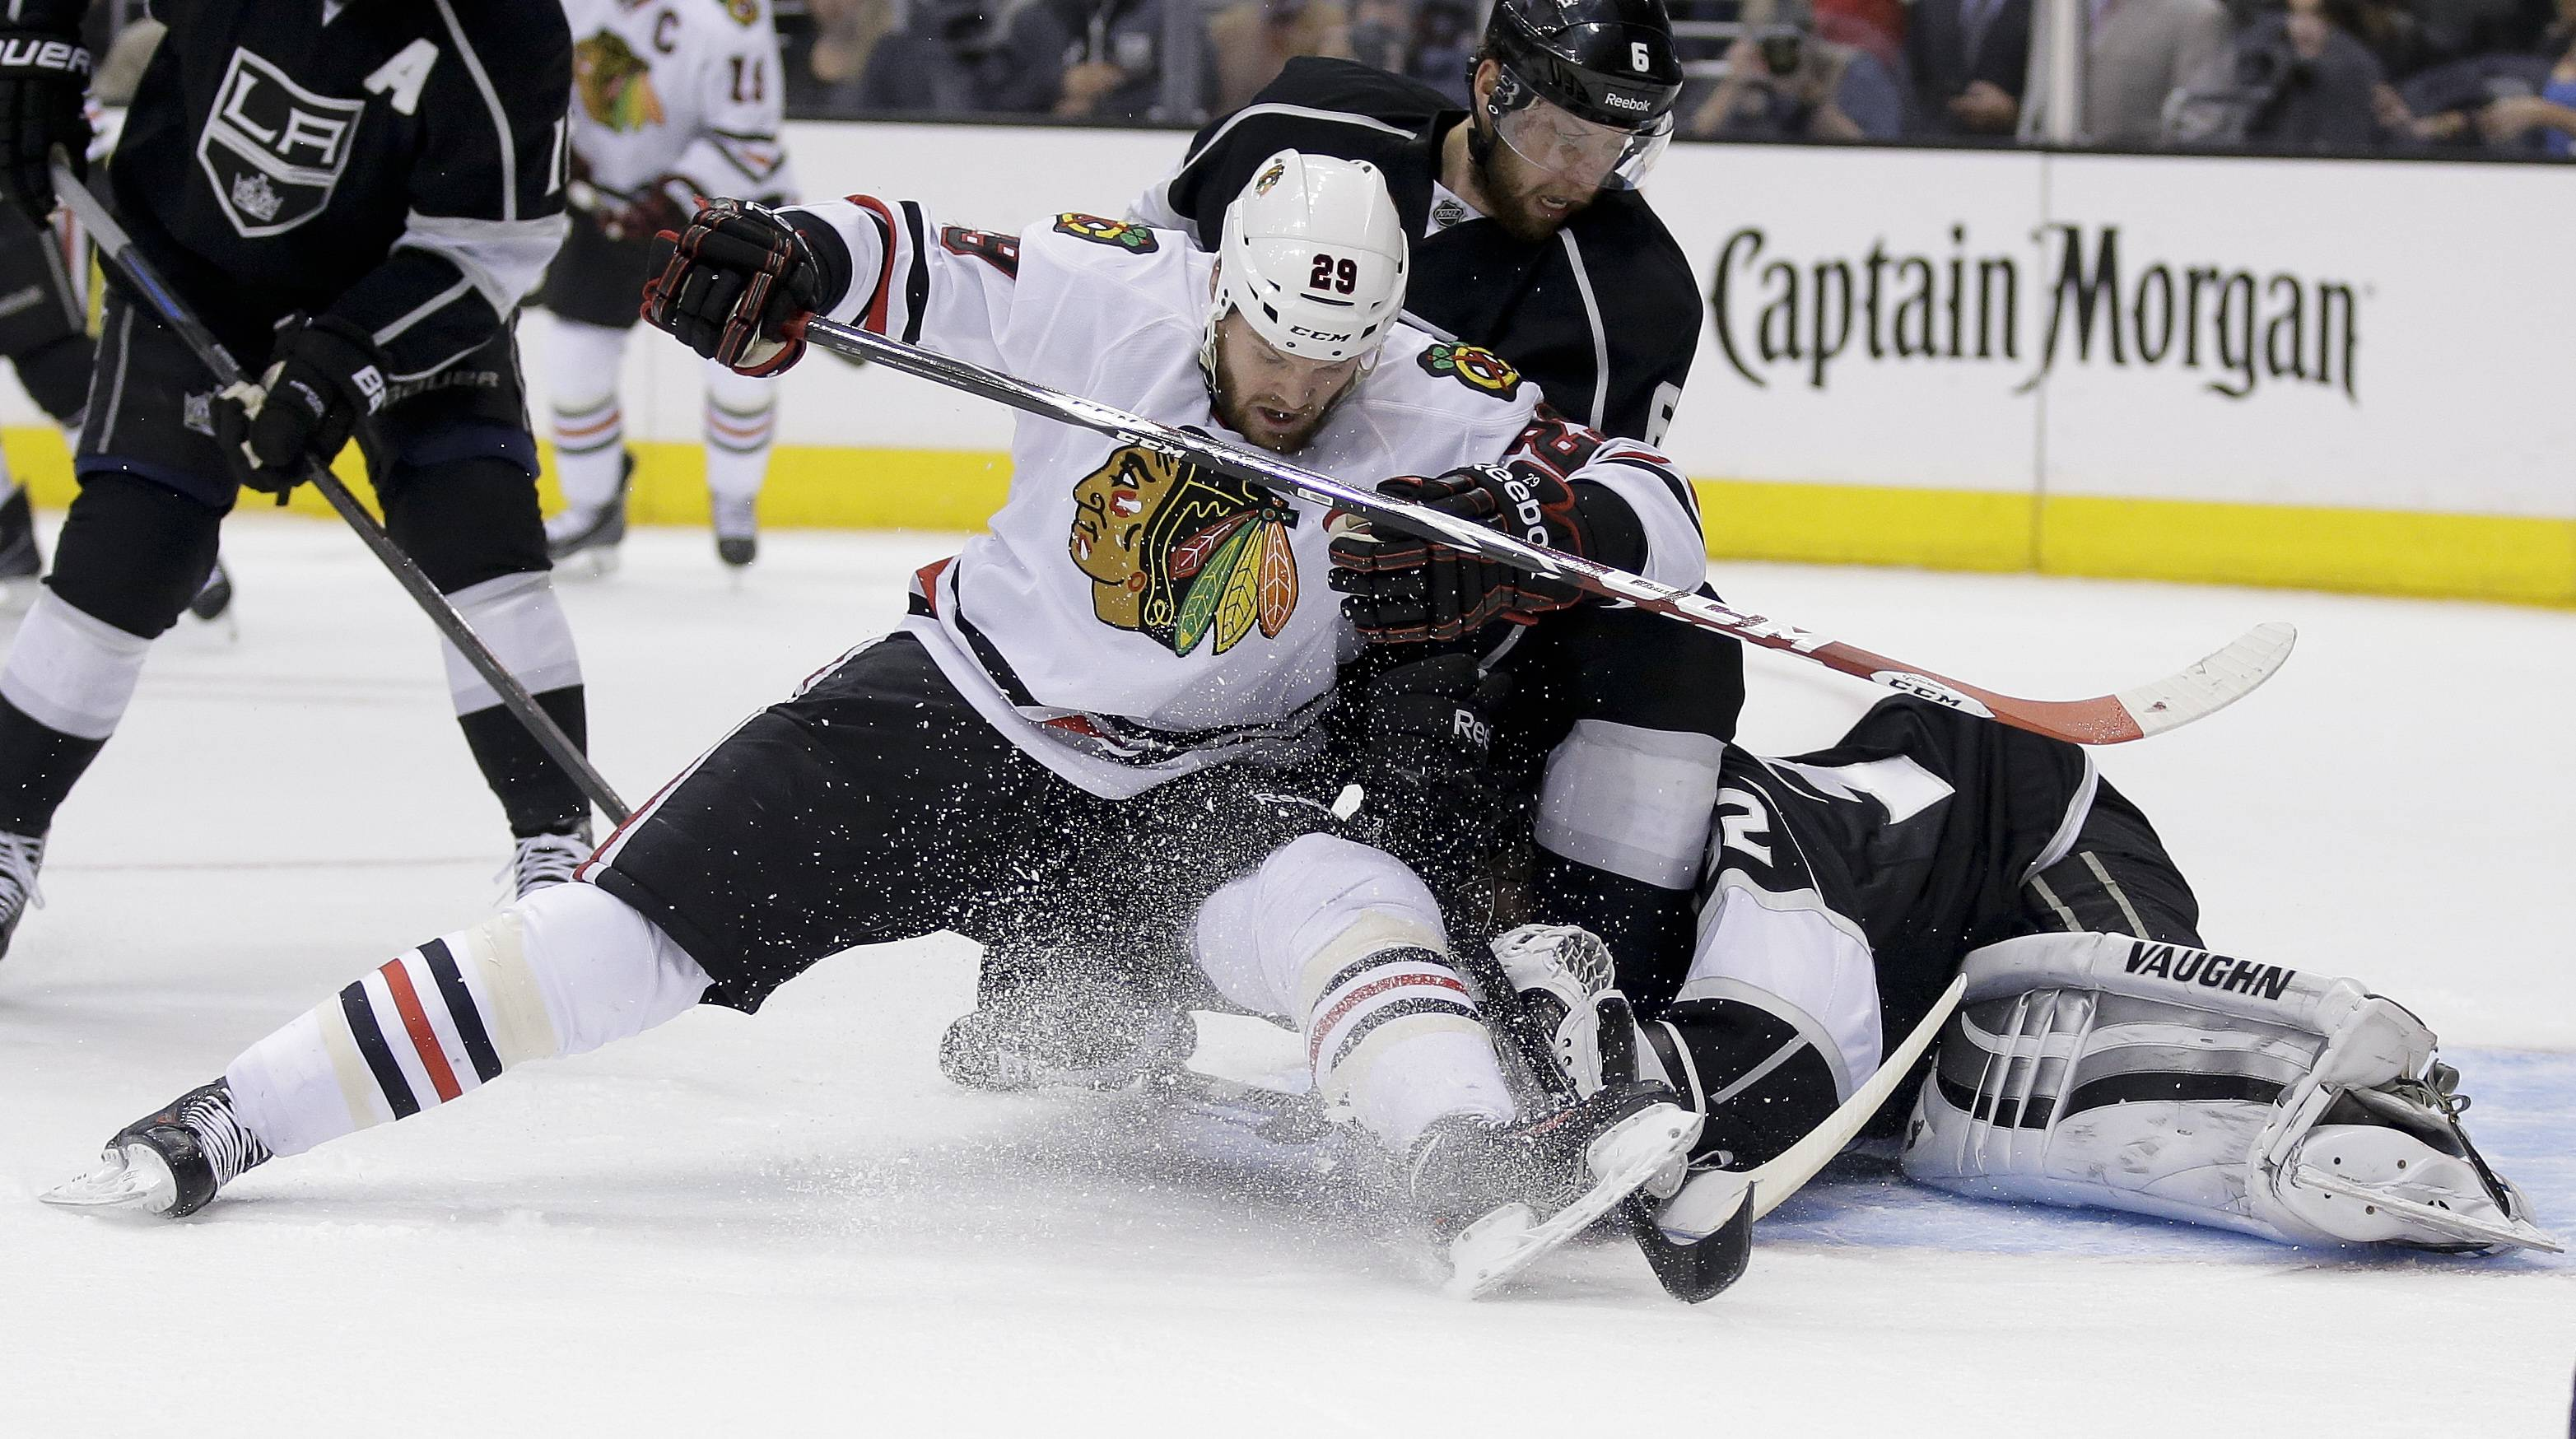 Kings goalie Jonathan Quick blocks a shot by Blackhawks left wing Bryan Bickell as Kings' Jake Muzzin helps defend during Game 6, which went to the Hawks to set up Sunday night's Game 7 at the United Center.